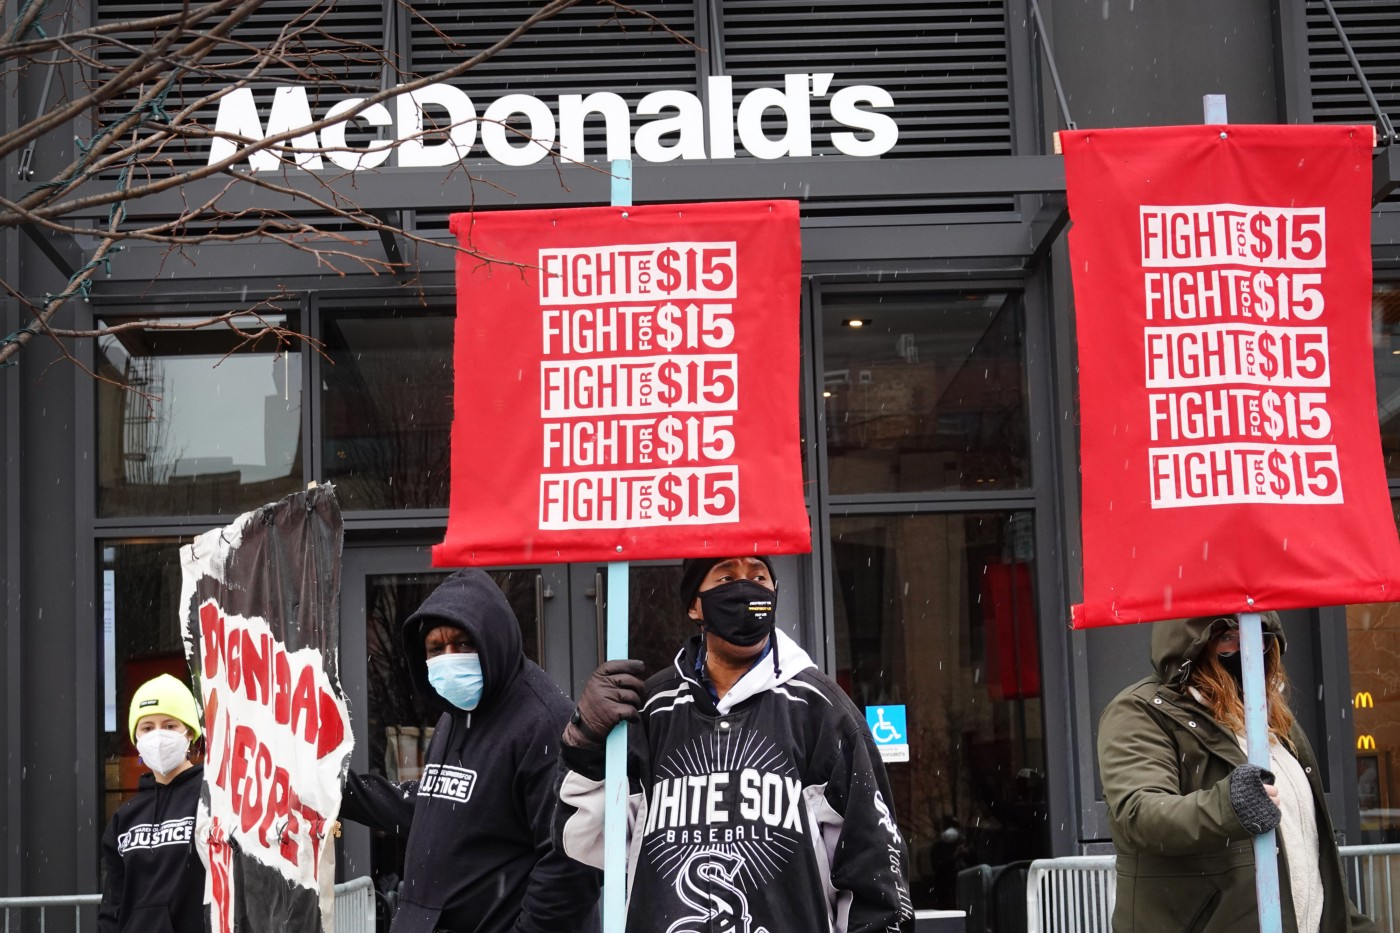 Demonstrators participate in a protest outside of McDonald's corporate headquarters on January 15, 2021 in Chicago, Illinois.